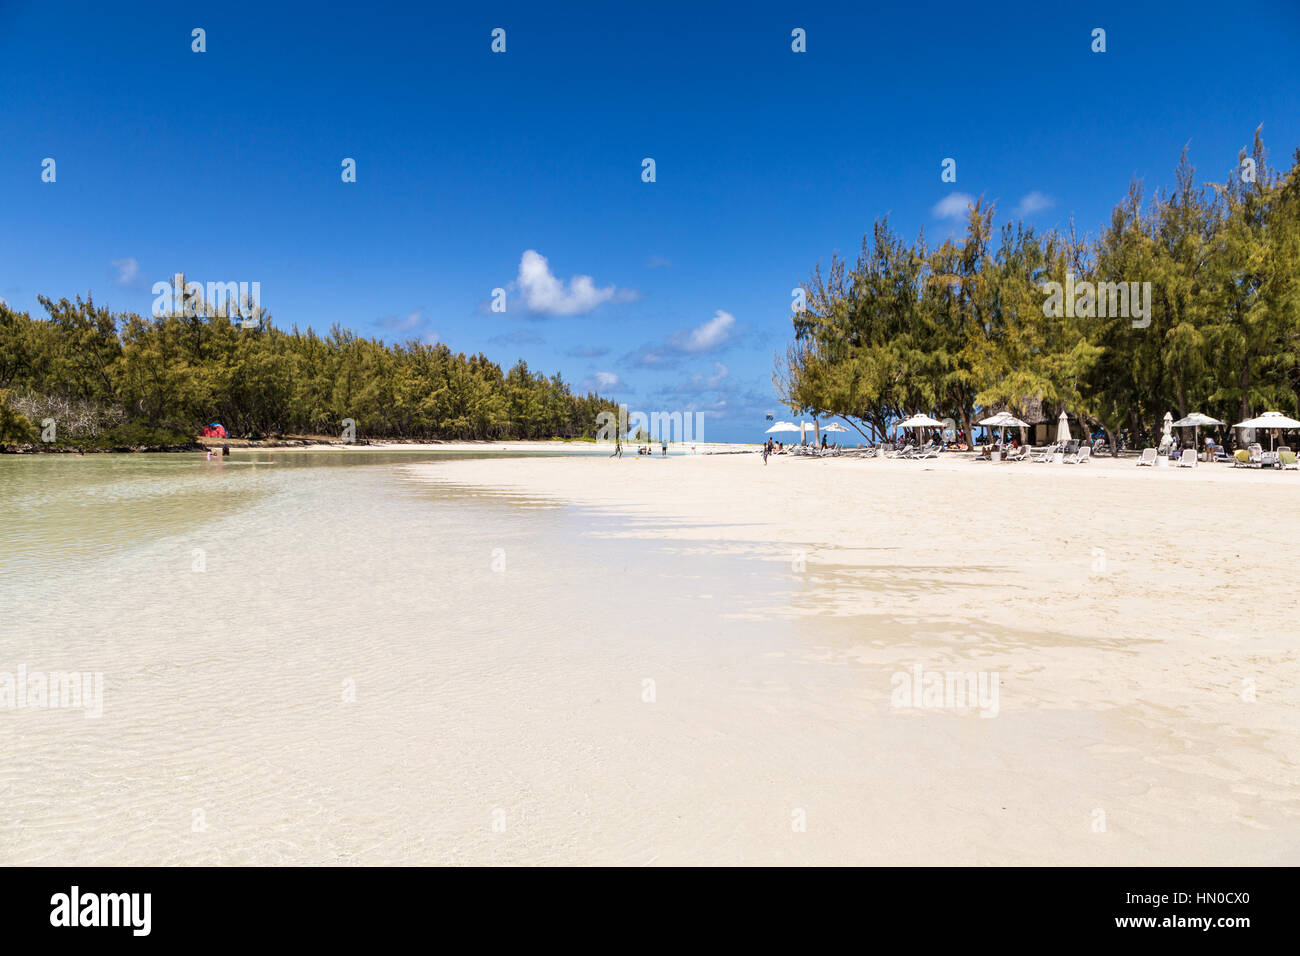 Idyllic beach on ile aux cerfs (deer island) off the coast of Mauritius. This is a popular day trip for tourists - Stock Image